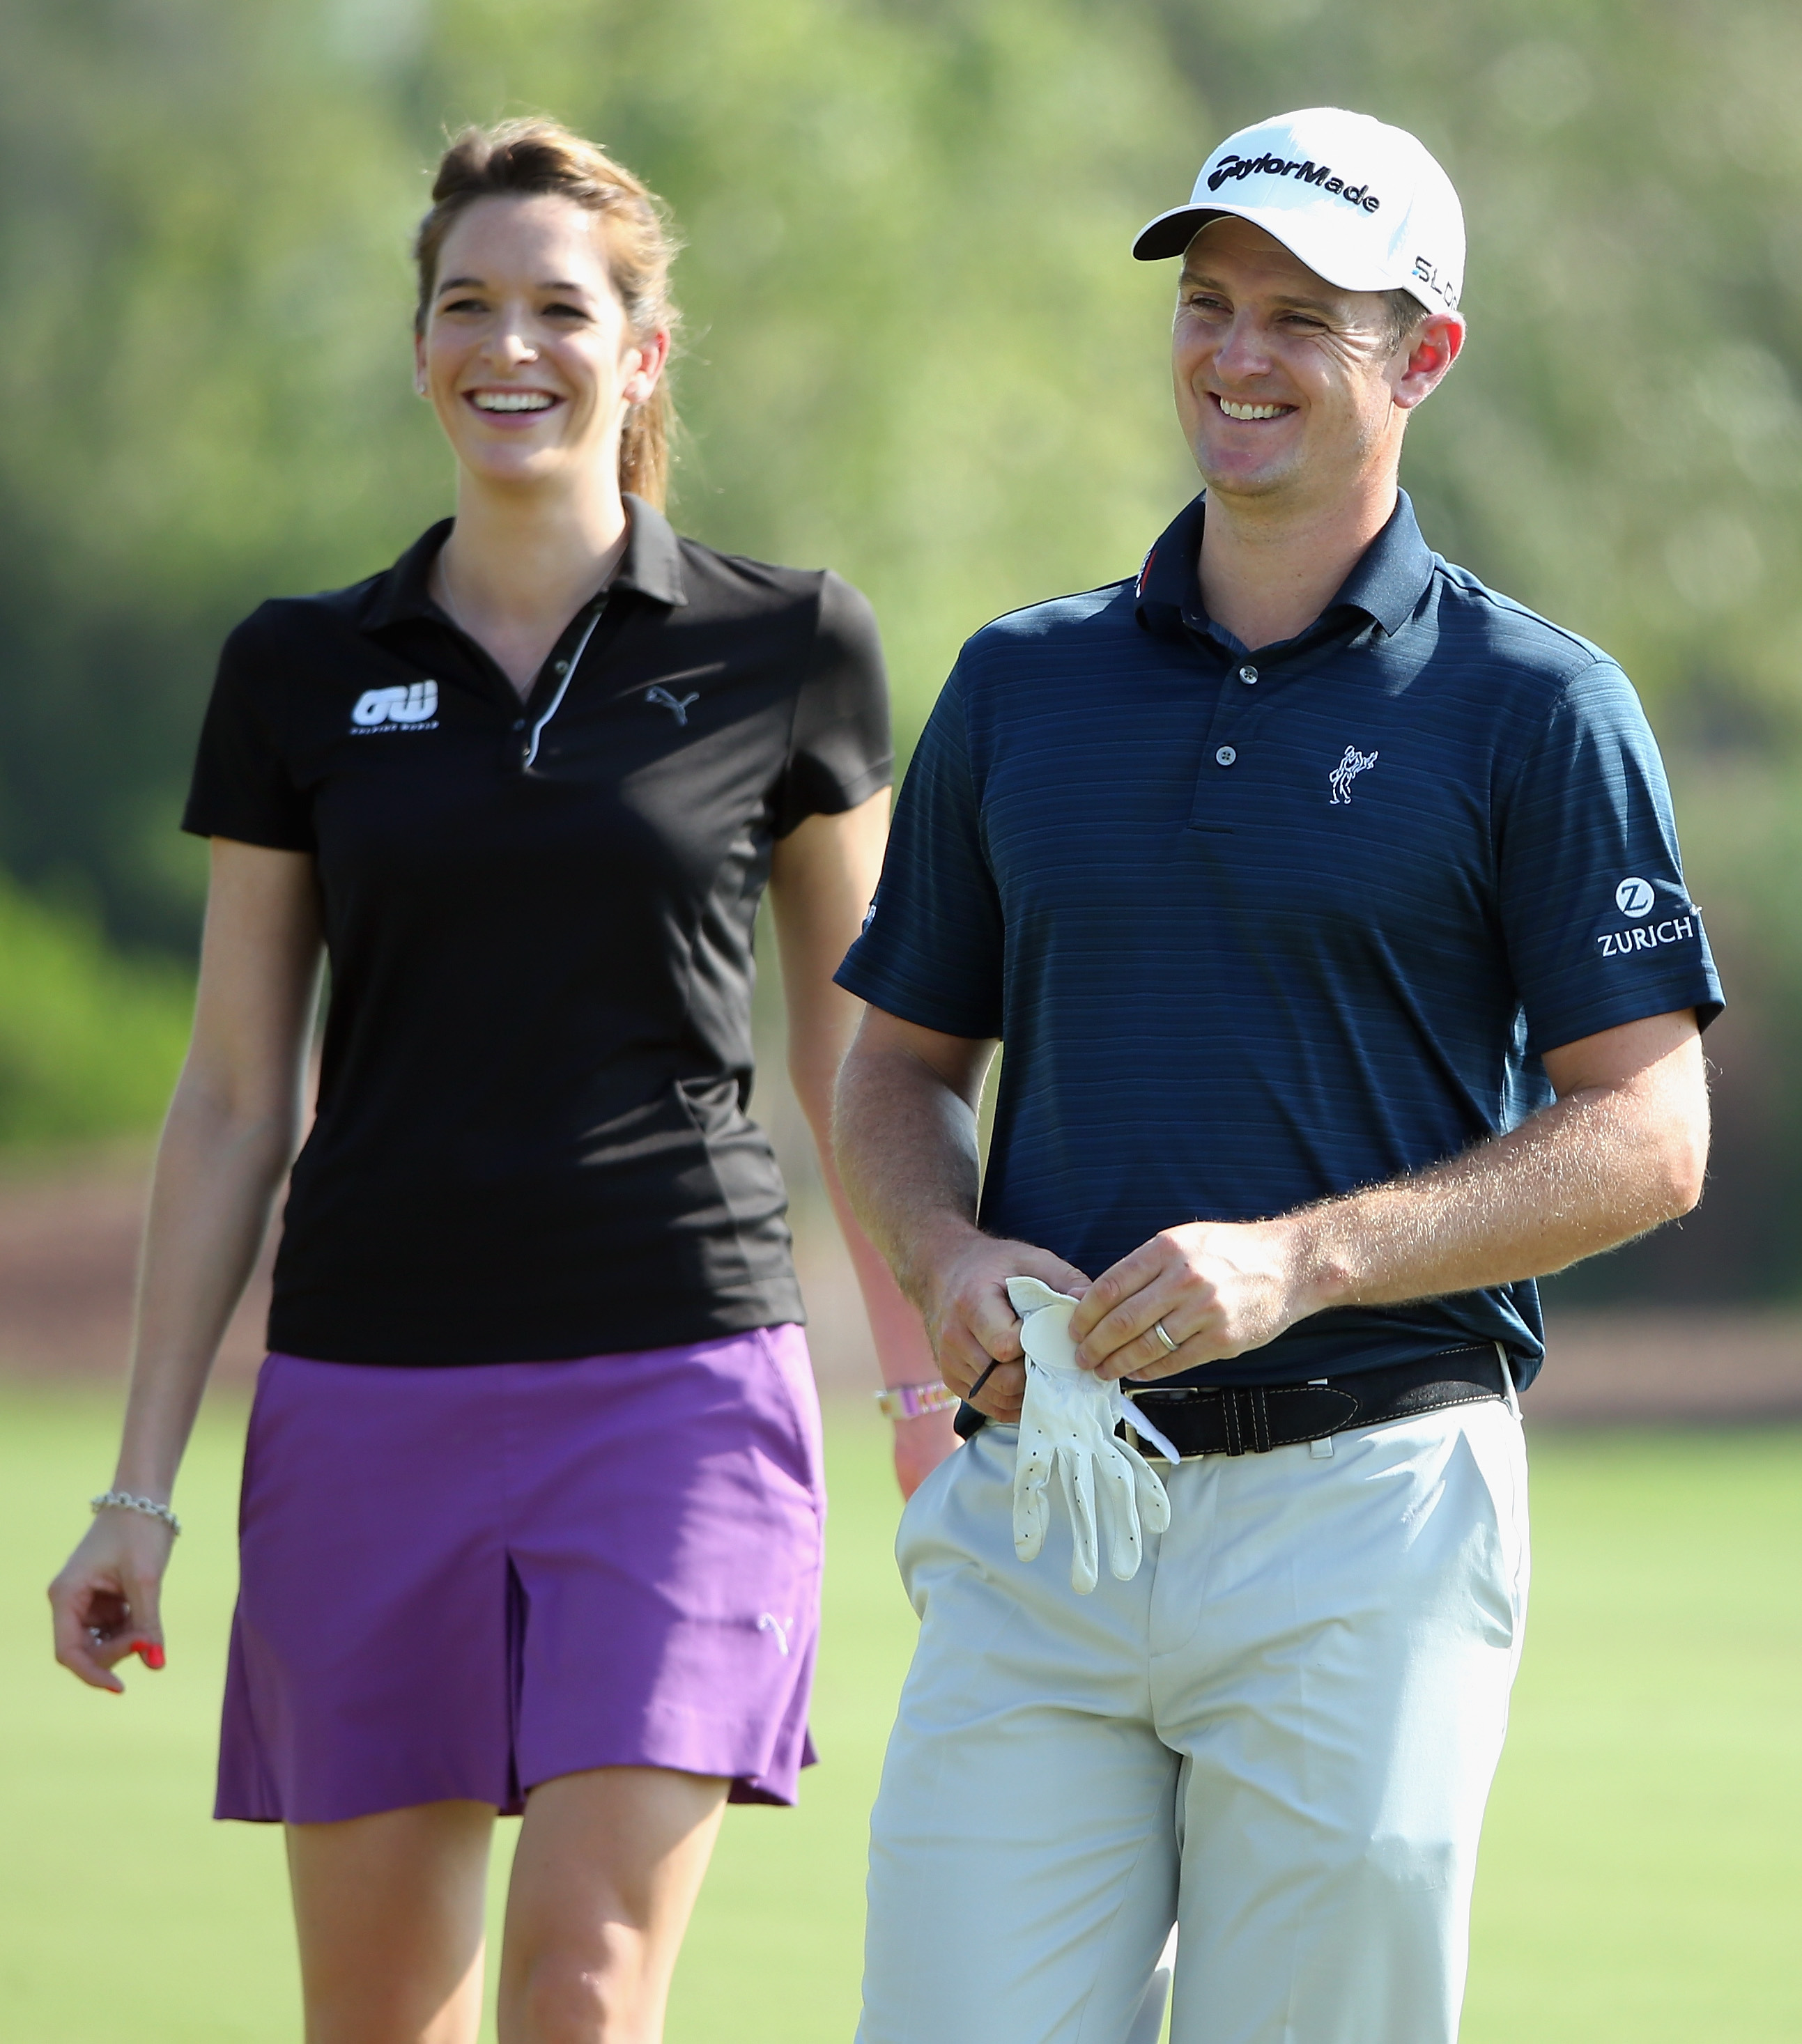 Cara Robinson chats with Justin Rose during the pro-am prior to the start of the 2013 DP World Tour Championship in Dubai.